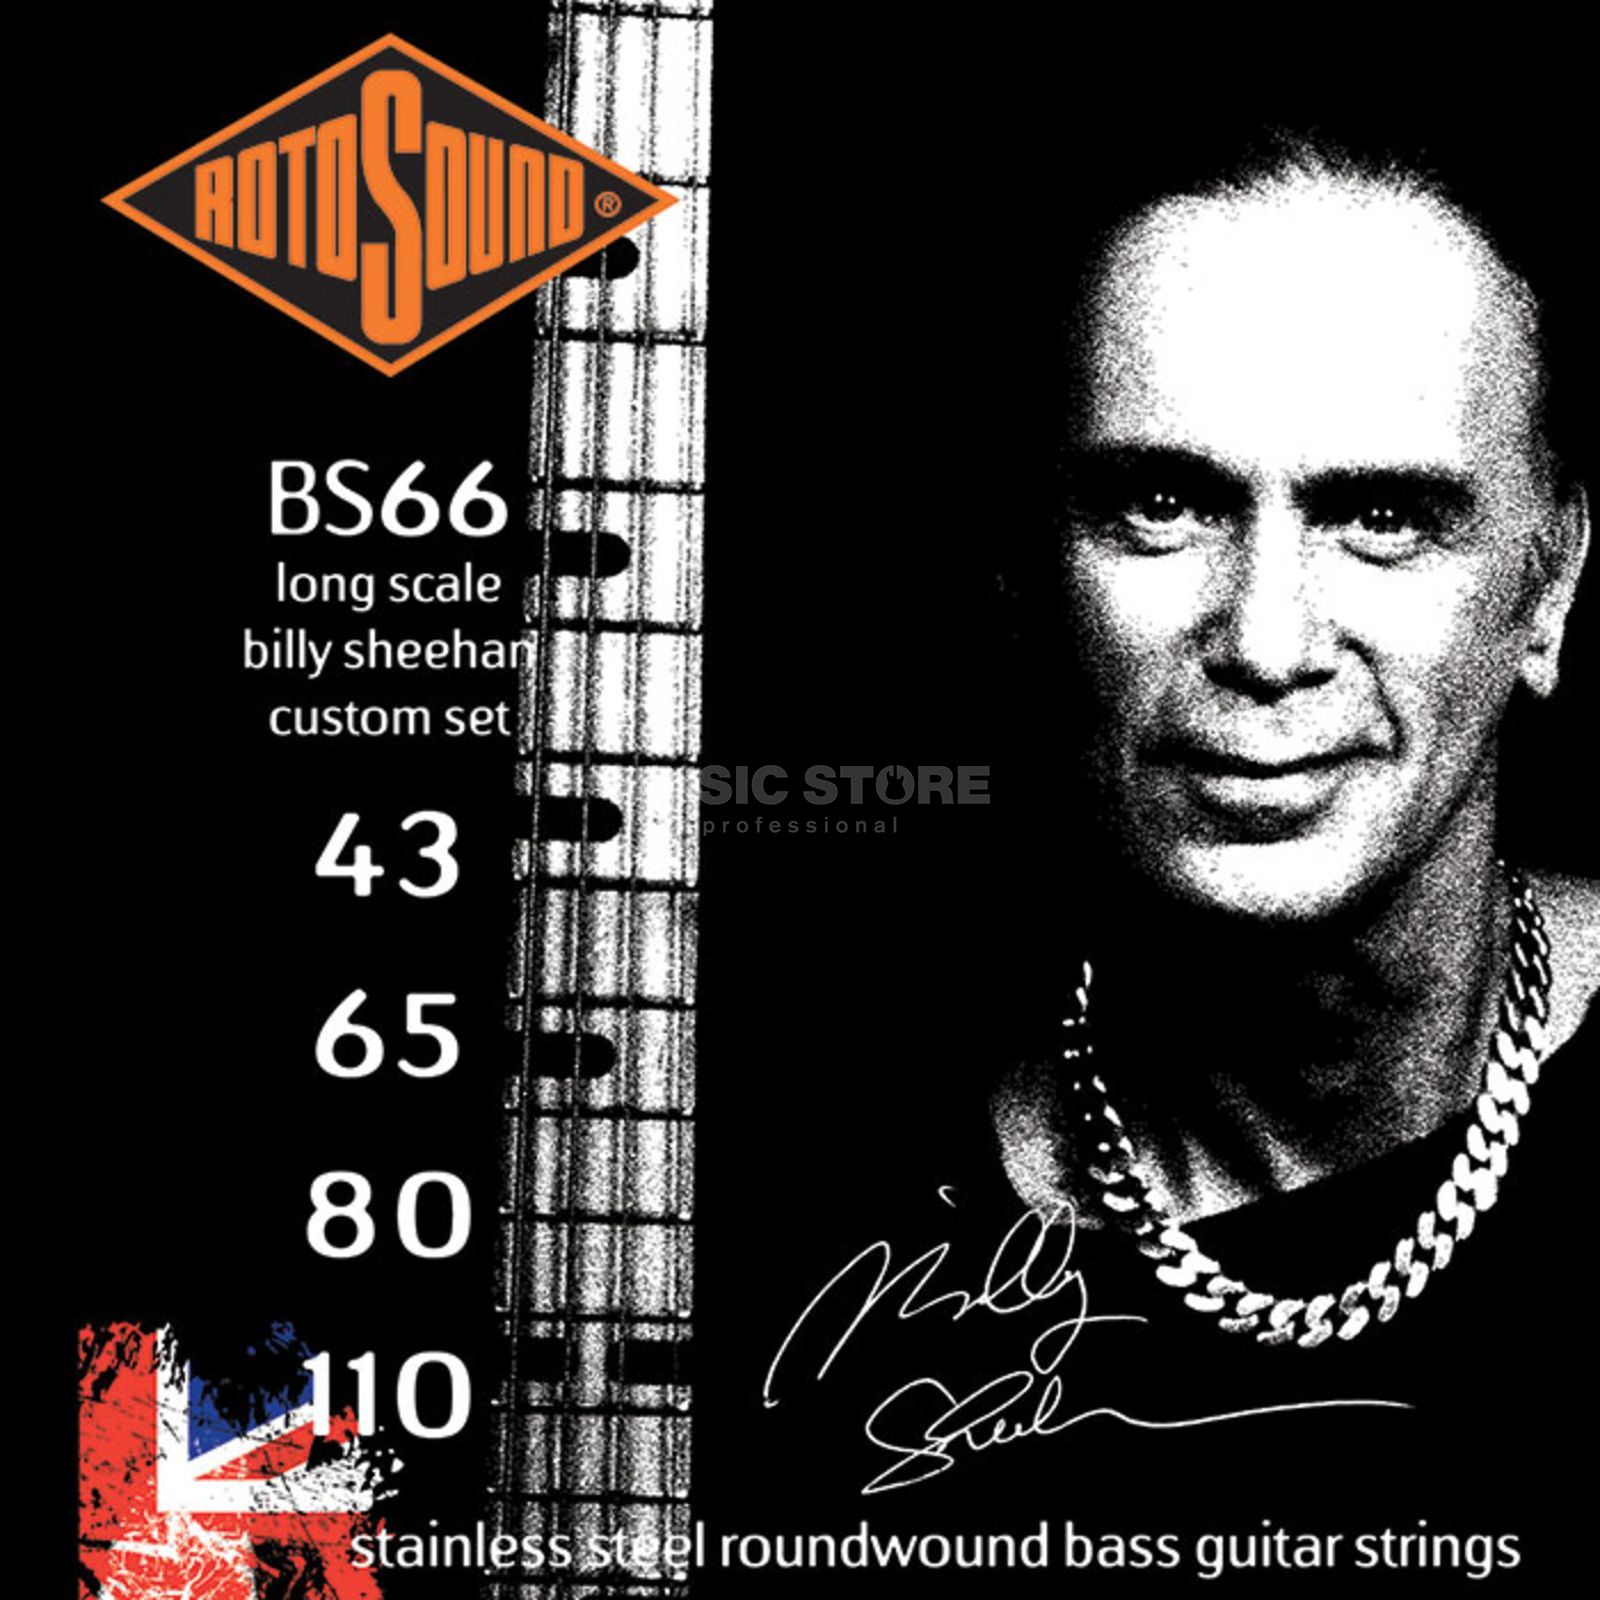 Rotosound Bass Strings BS66 43-110 4 Set Billy Sheehan, Stainless Steel Produktbillede